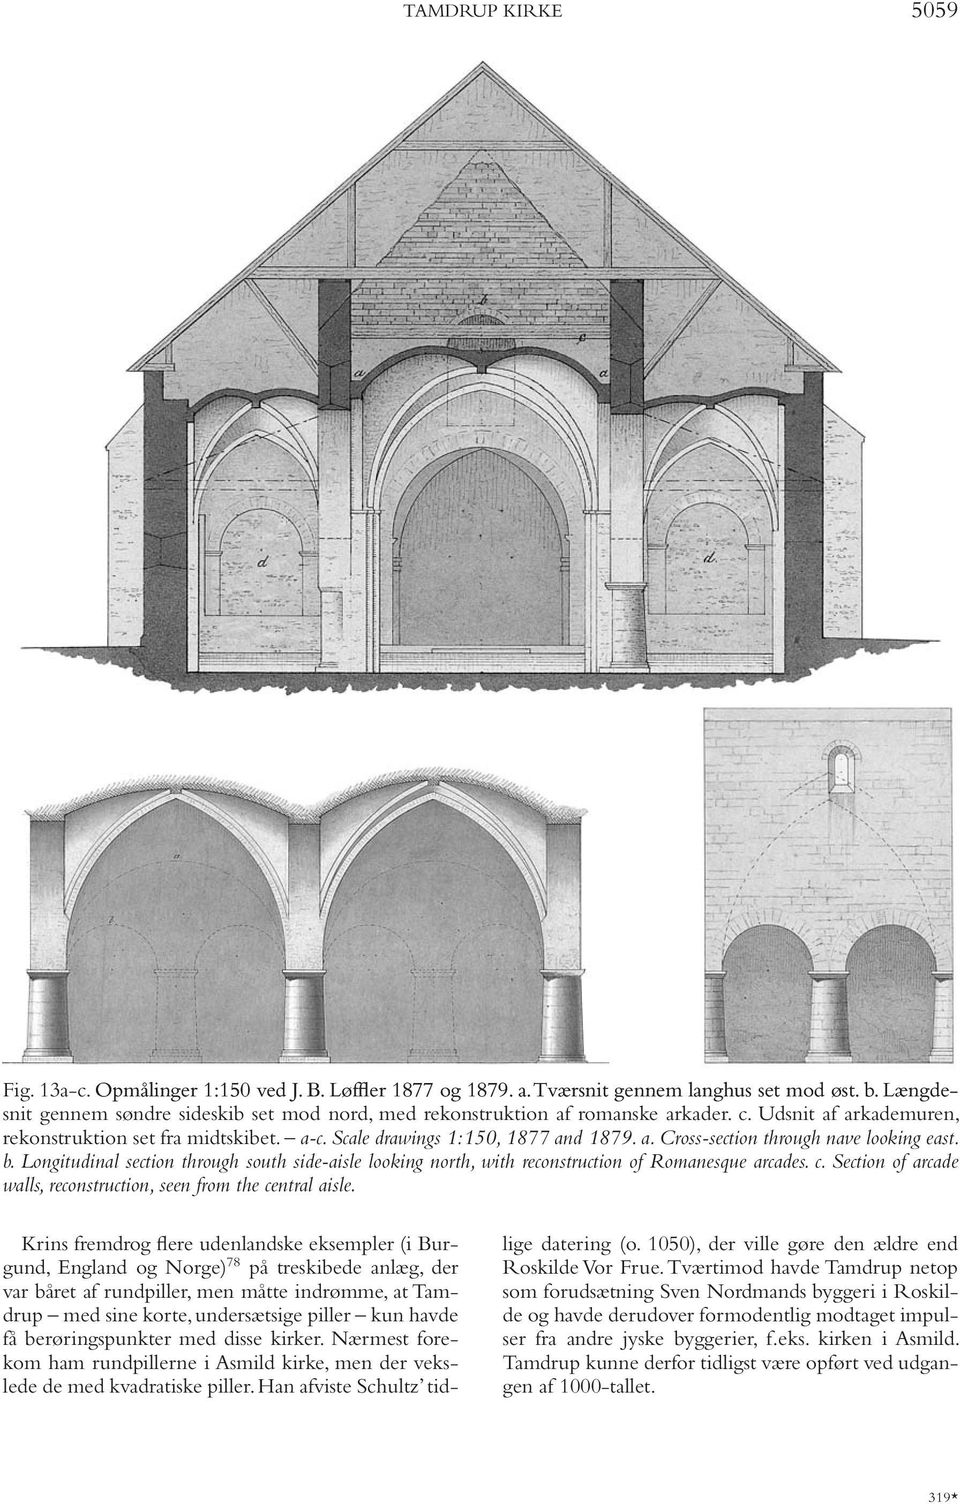 b. Longitudinal section through south side-aisle looking north, with reconstruction of Romanesque arcades. c. Section of arcade walls, reconstruction, seen from the central aisle.